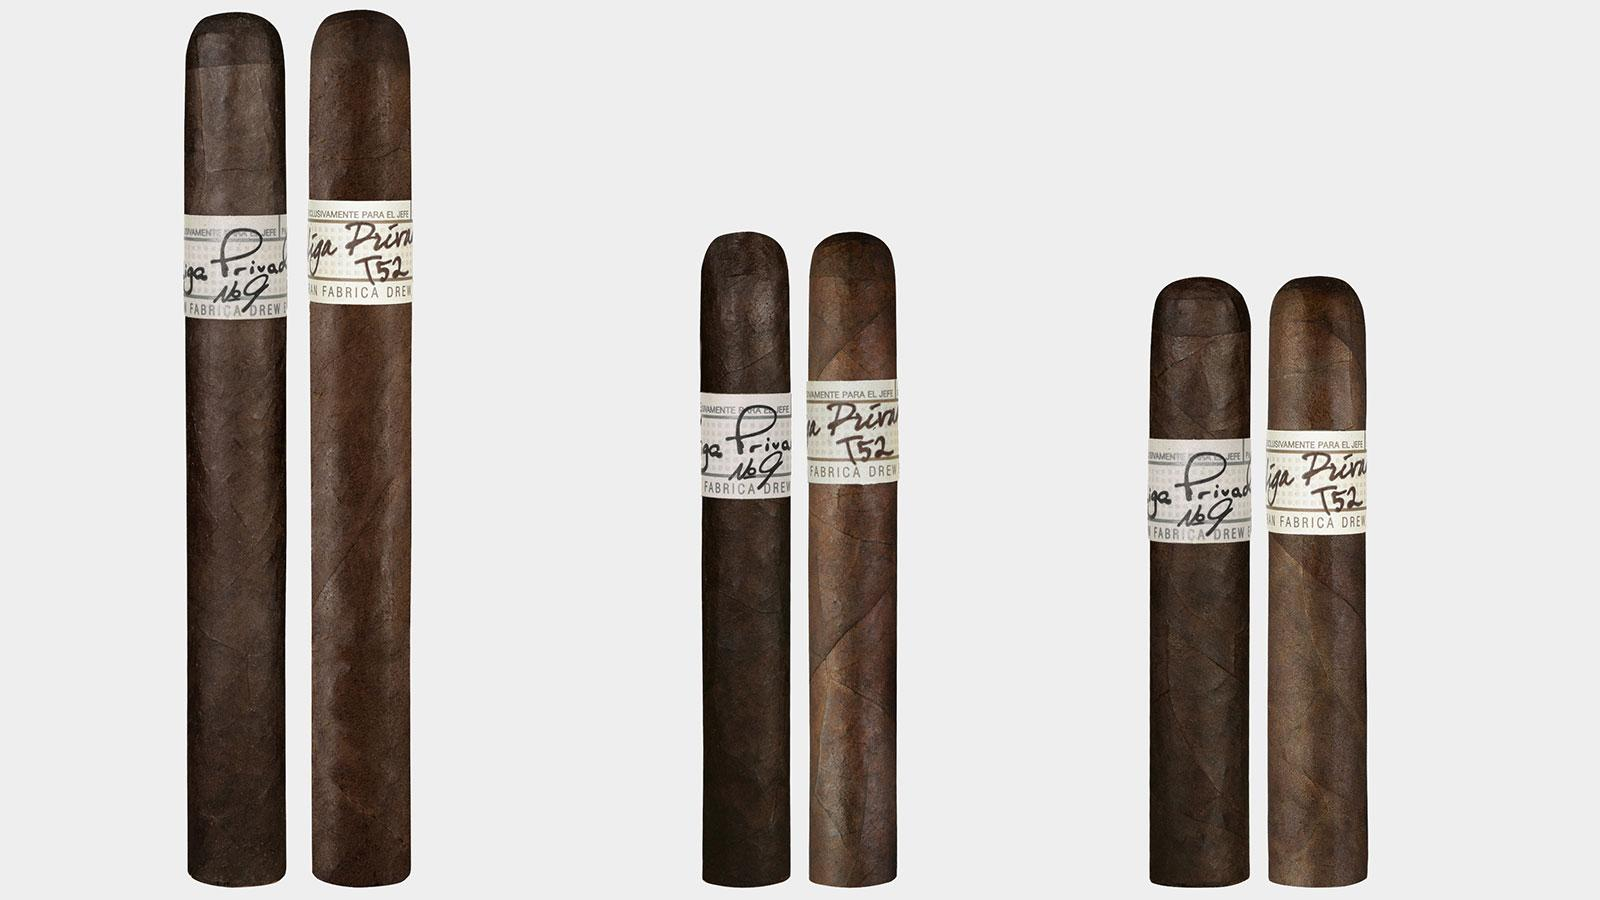 Drew Estate Adding Six Smaller Sizes to Liga Privada